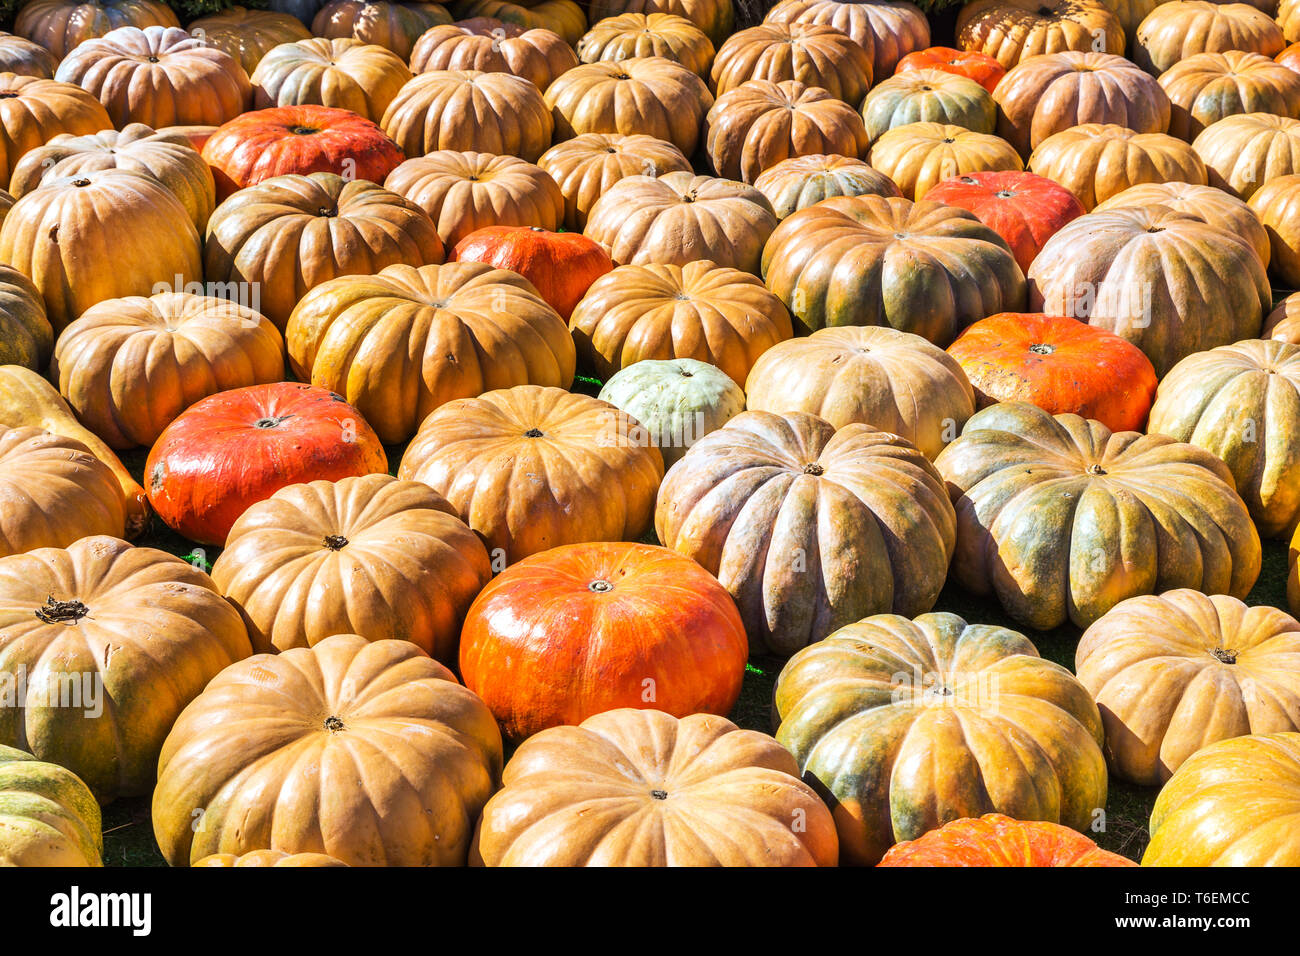 Background of round colorful pumpkins - Stock Image